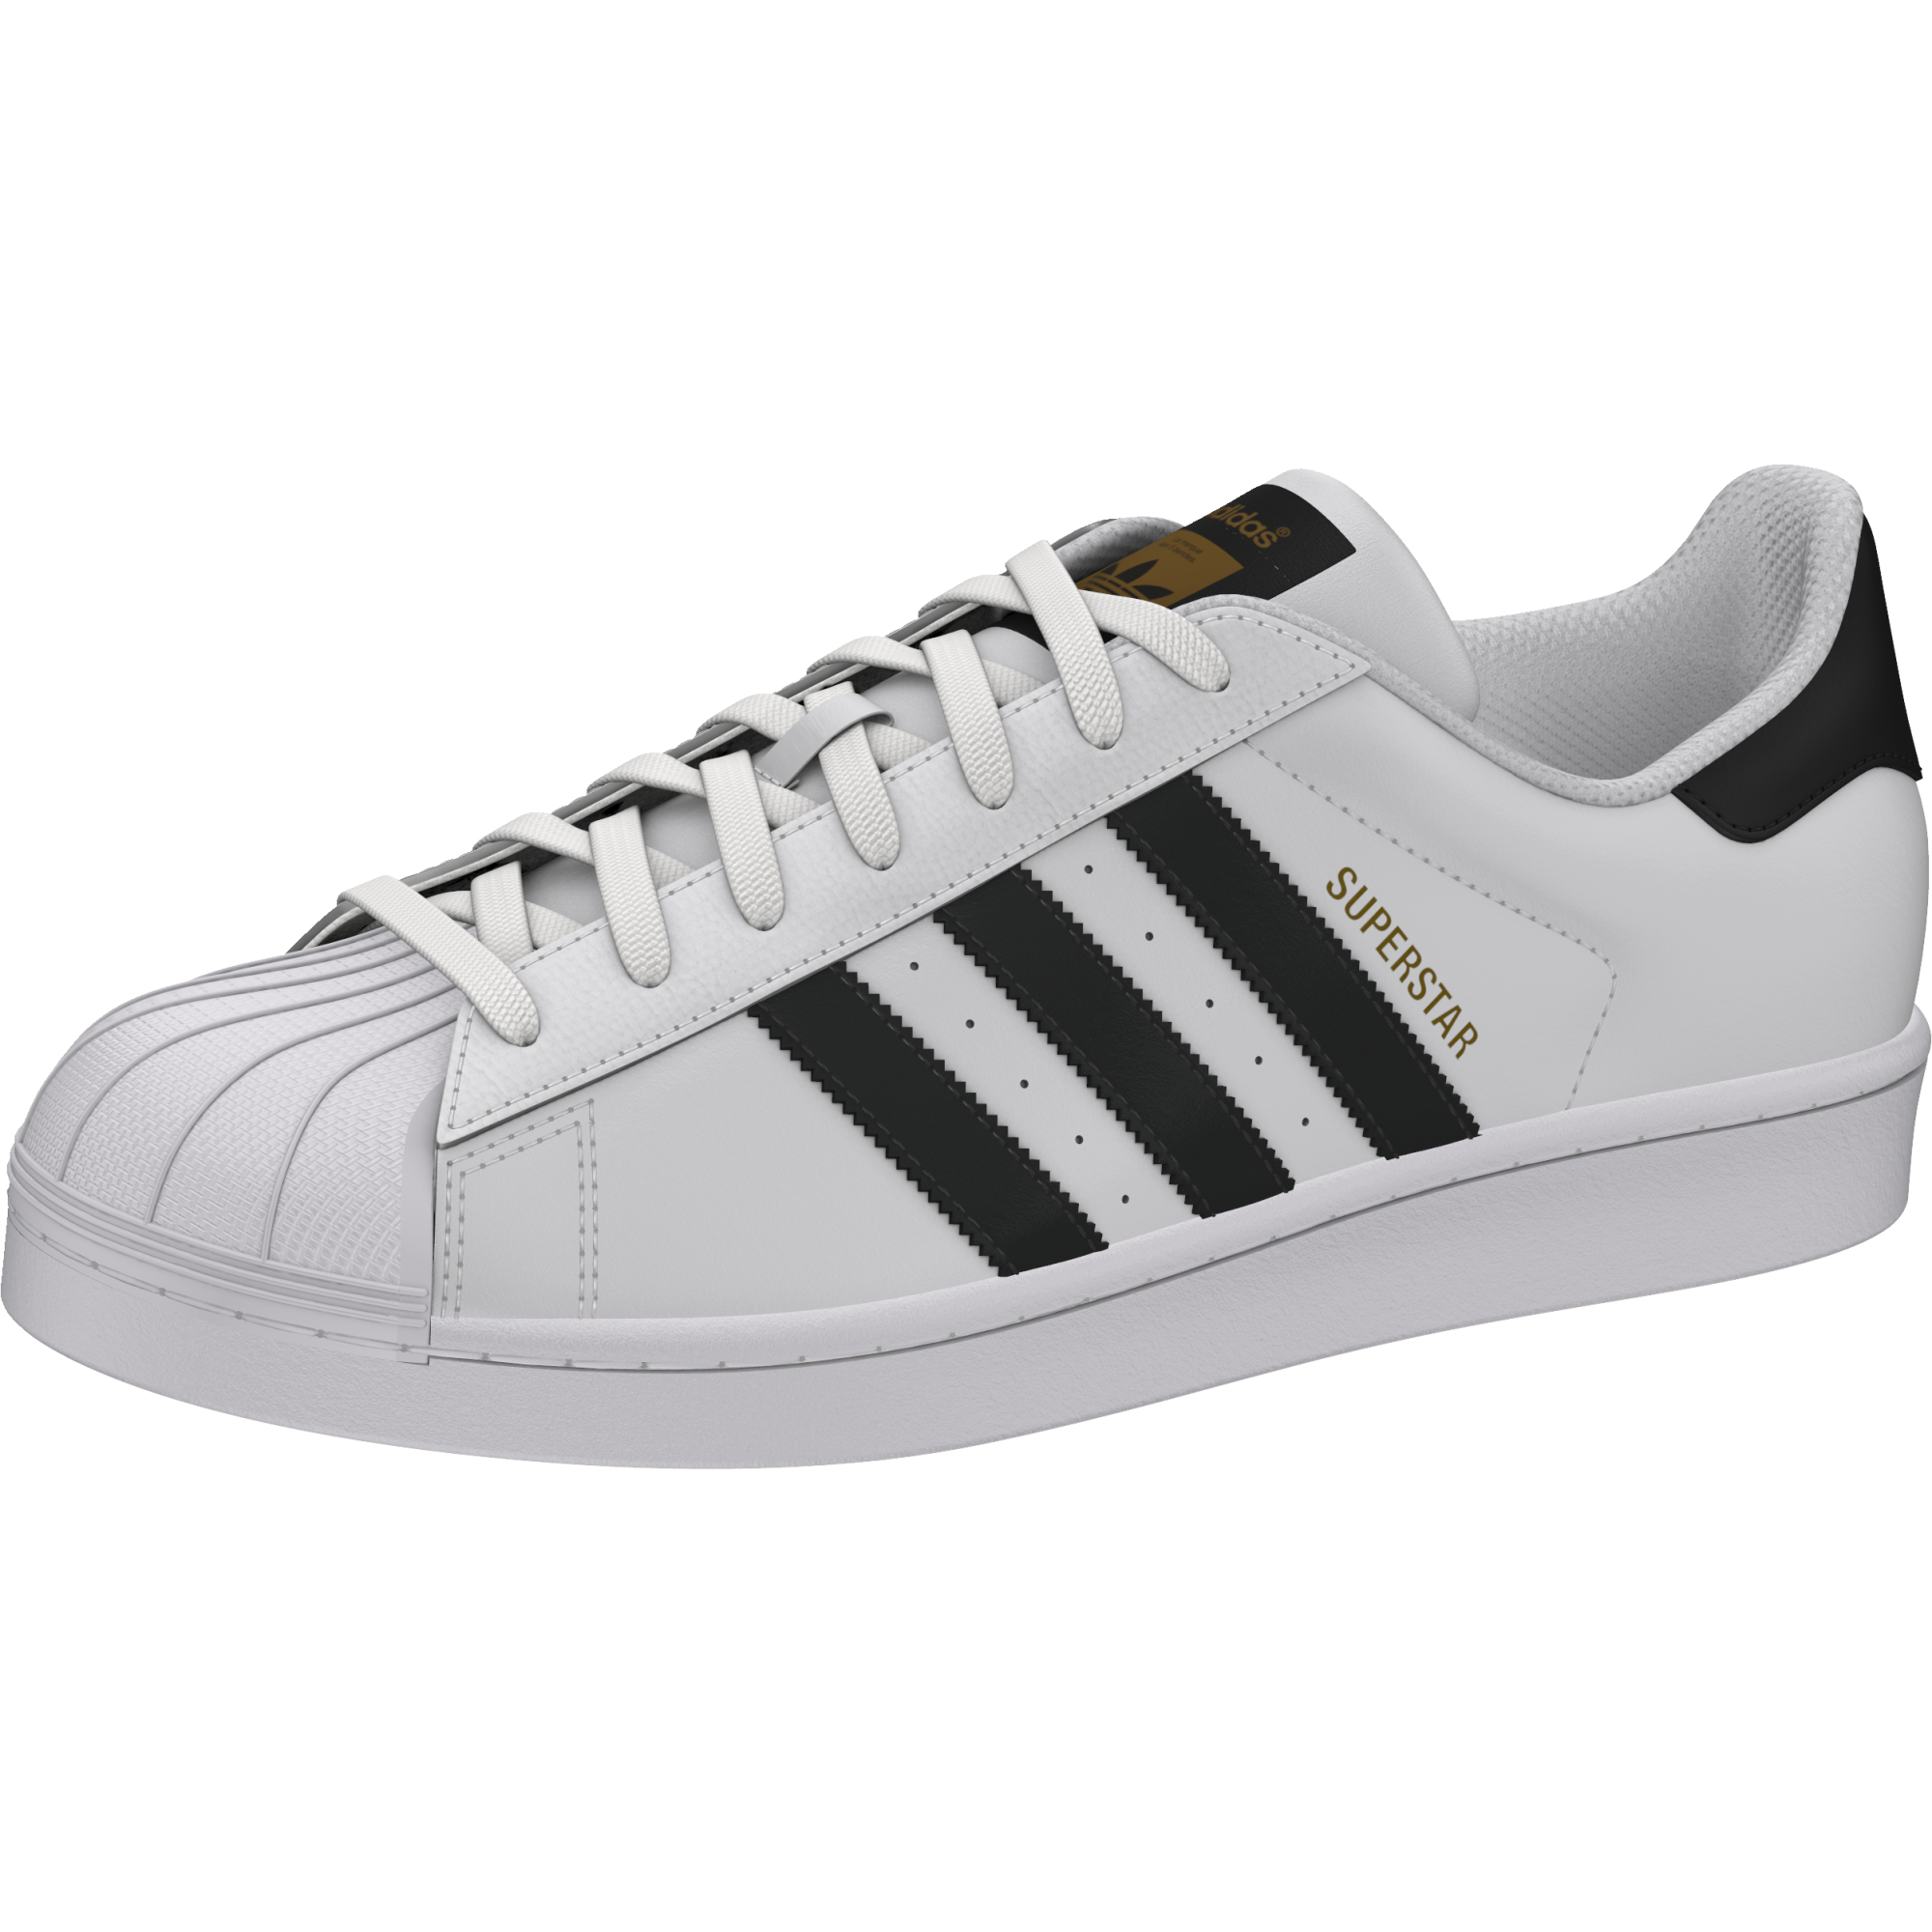 Adidas SUPERSTAR - C77124